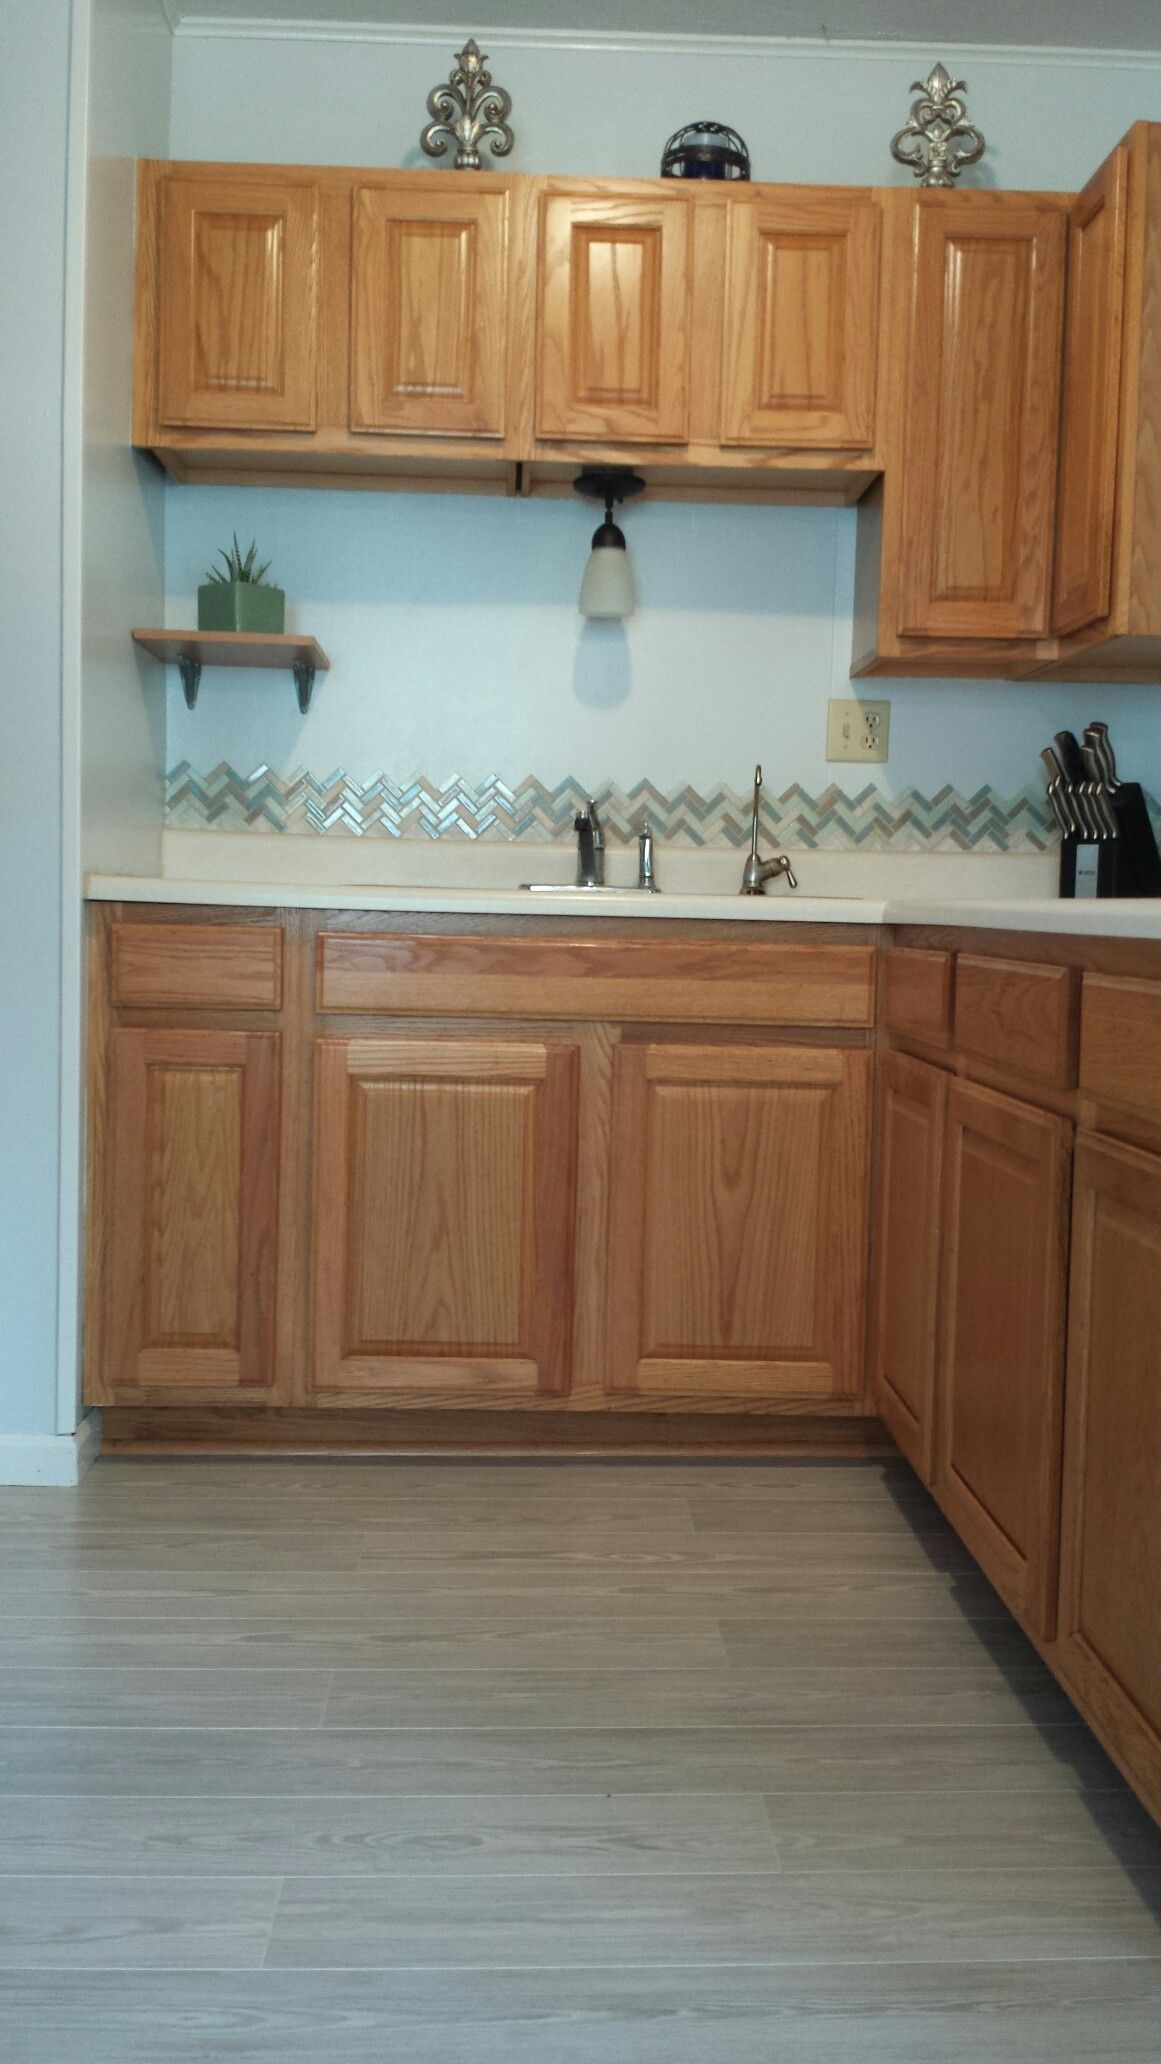 design cabinets with oak original of cabinet kitchen updated new island white honey color ideas